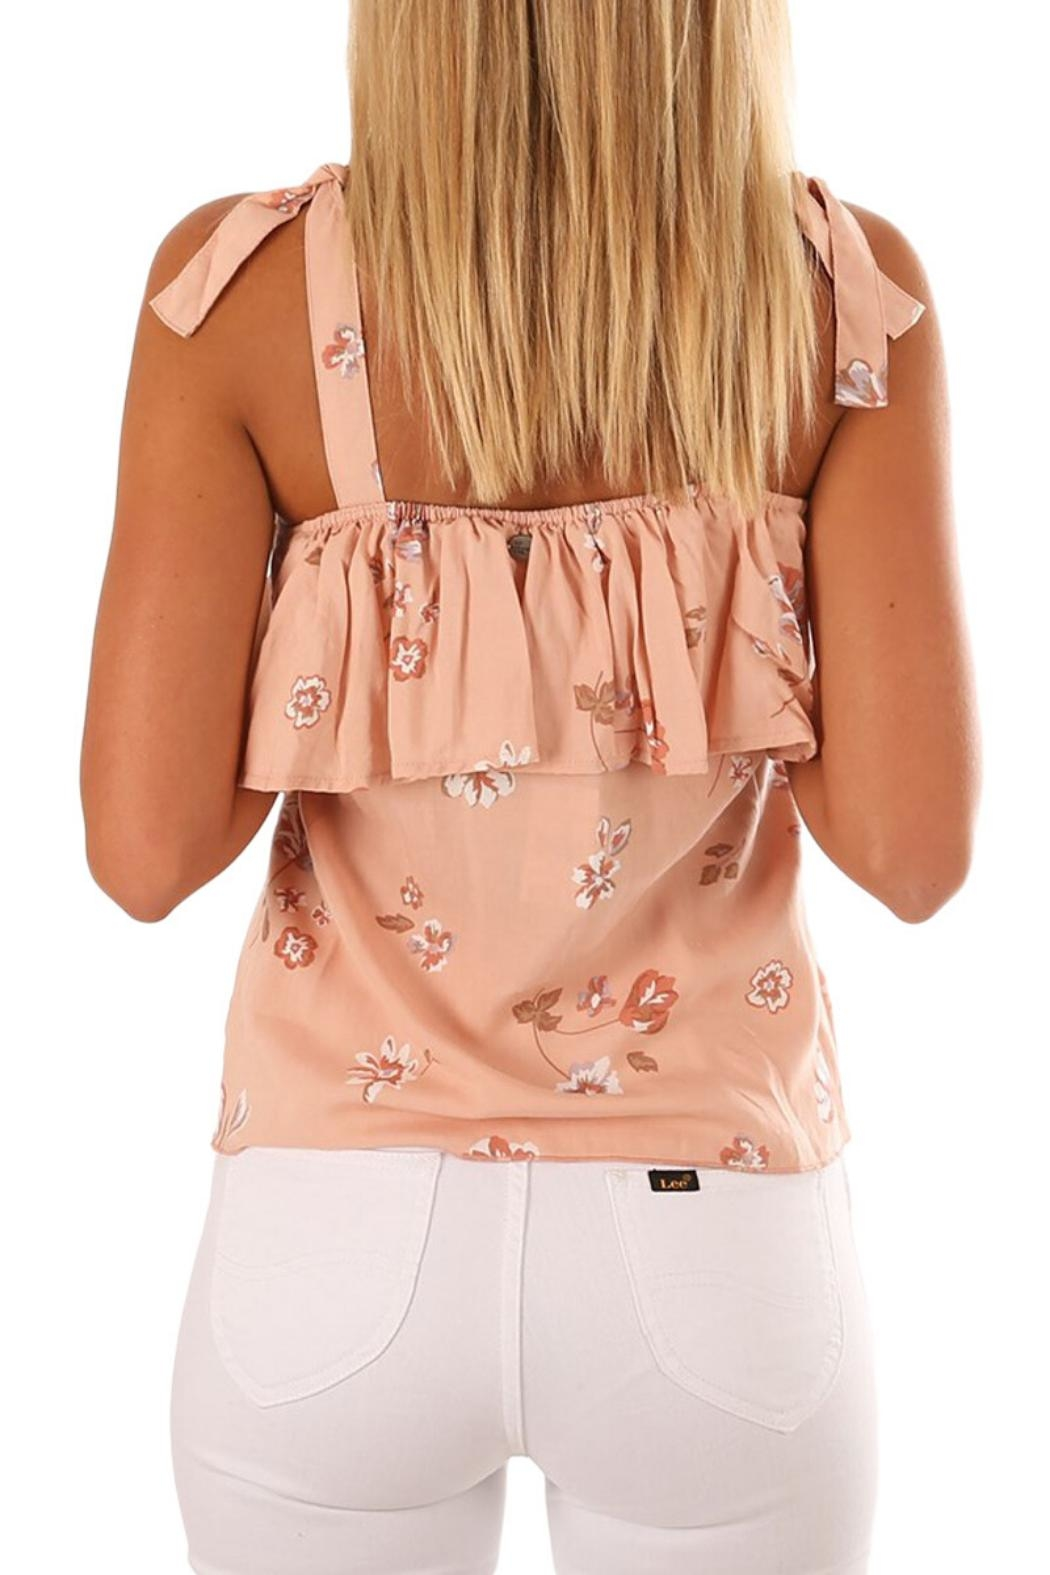 Unbranded Coral Floral Top - Front Full Image